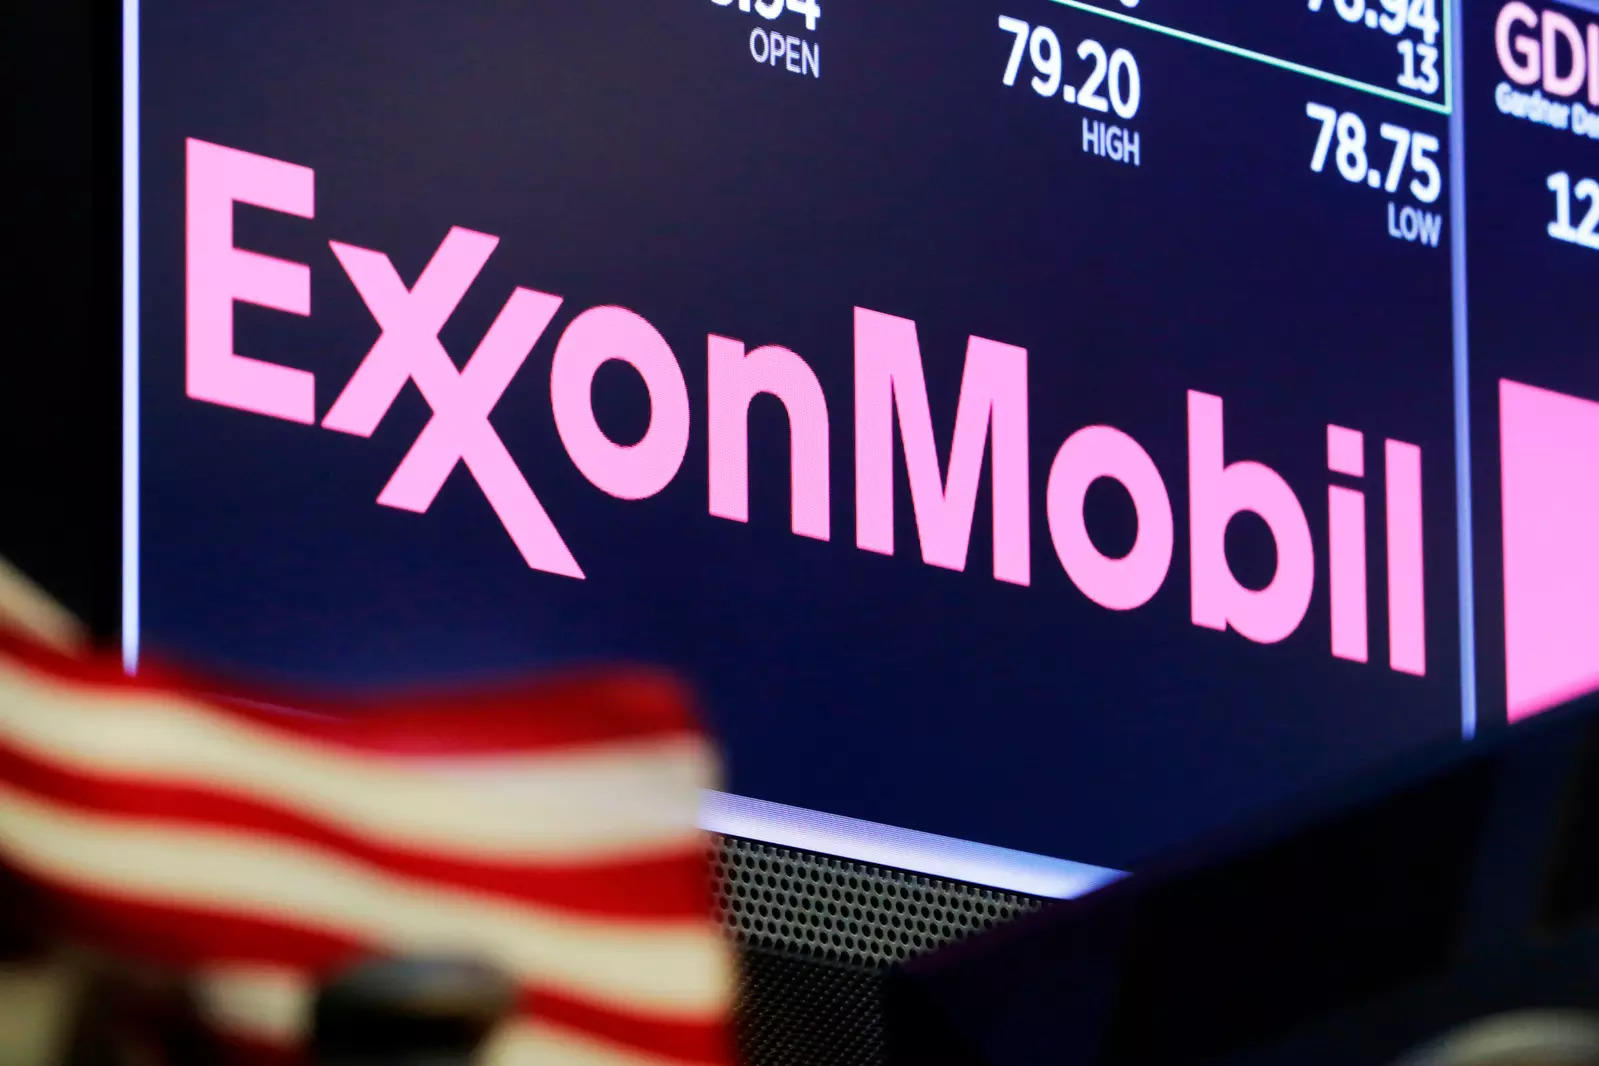 Exxon has been operating the 2,700-acre (11-sq km) complex with managers and replacement workers. The facility makes gasoline and Mobil 1 motor oil.